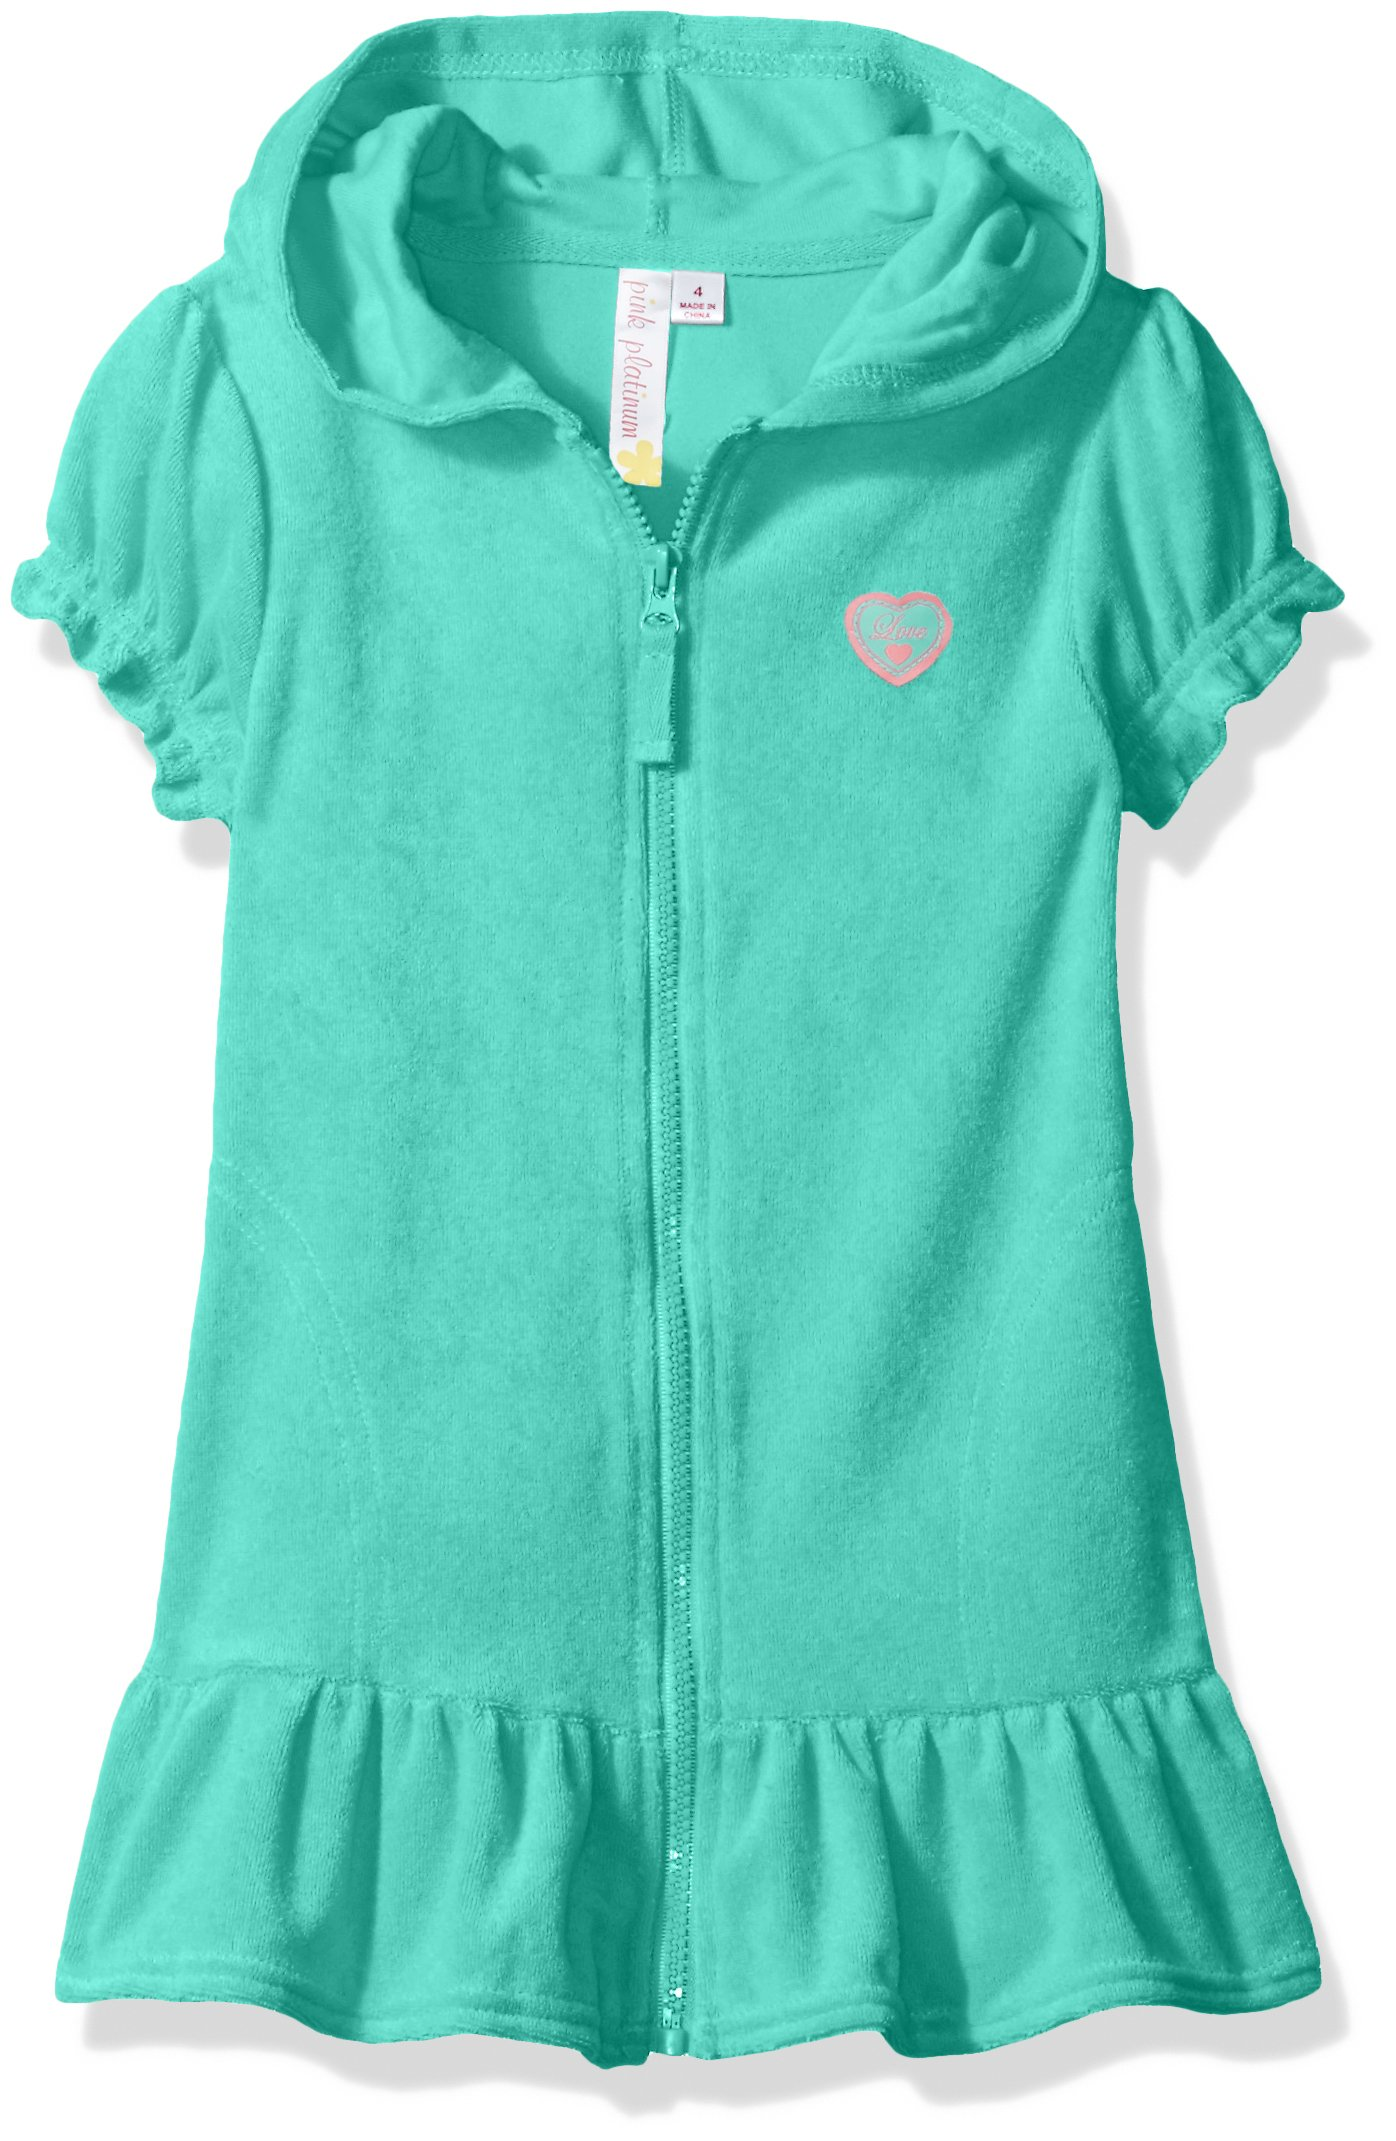 Pink Platinum Toddler Girls' Hooded Terry Swim Cover up, Seafoam, 3T